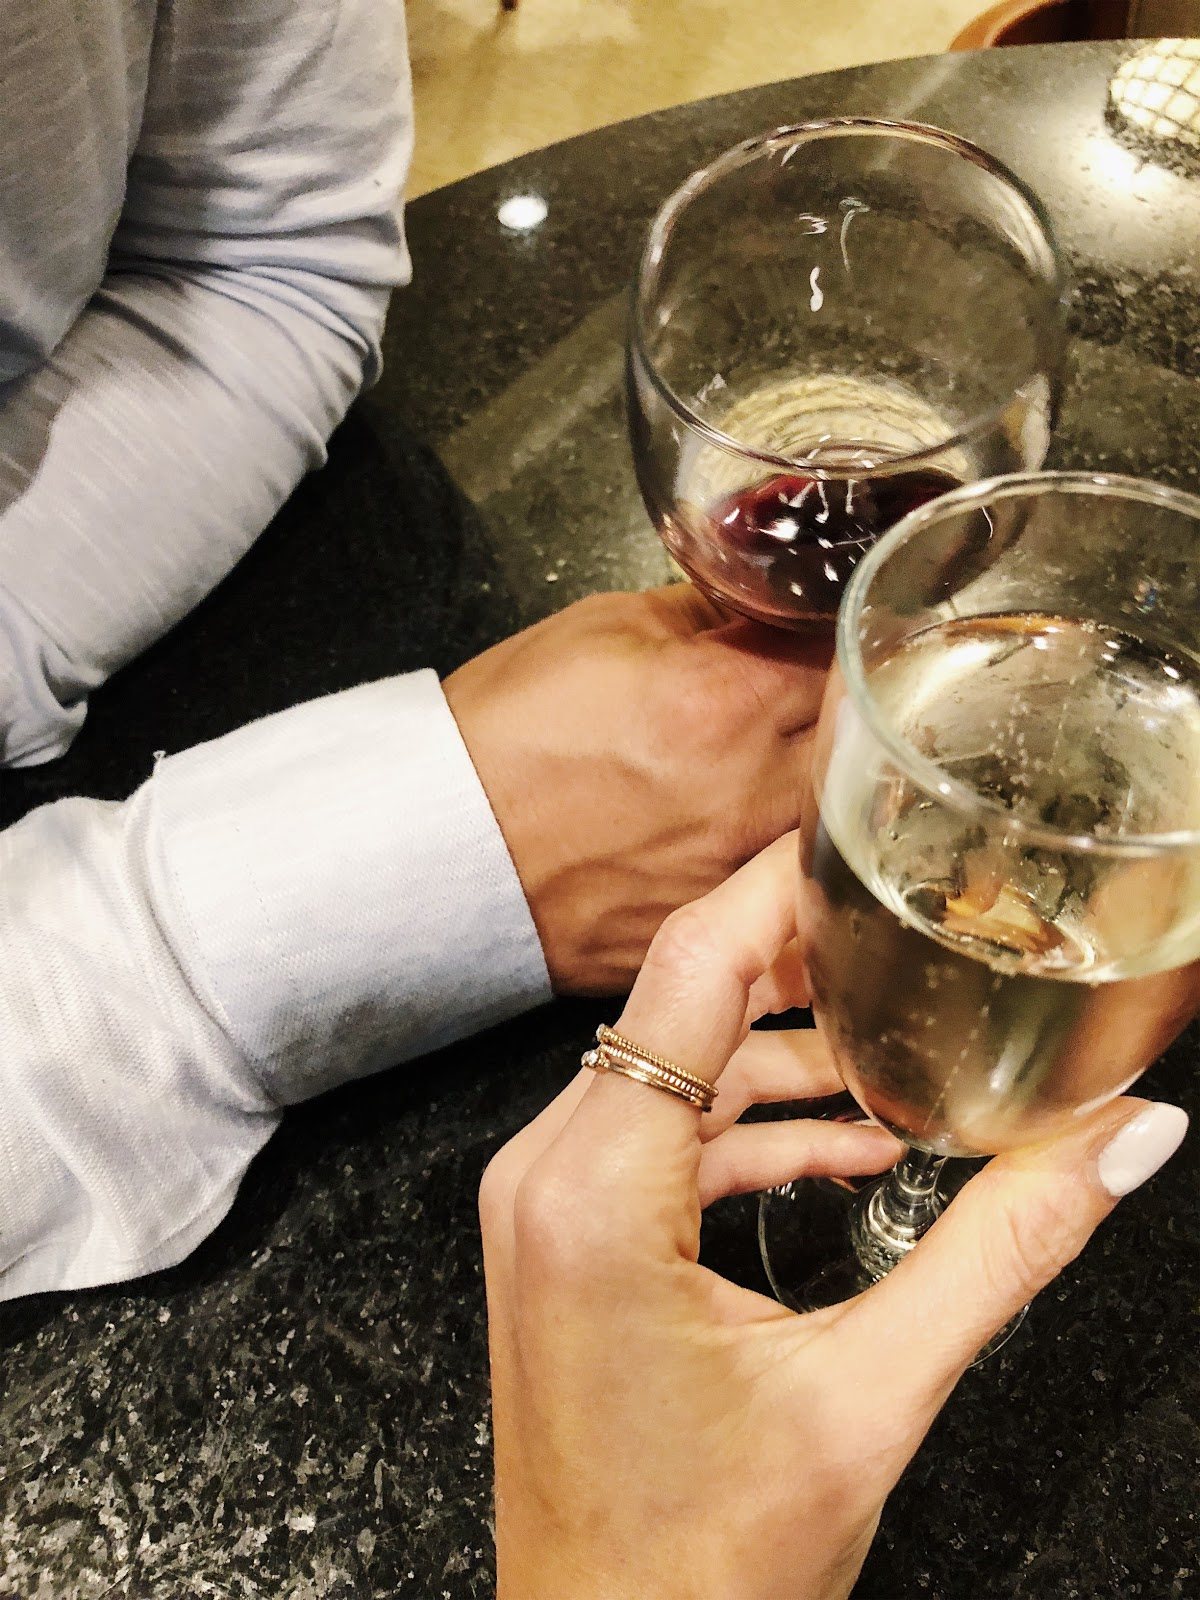 Library Hotel's Wine and Cheese Reception from 5-8 PM, How to travel with a foodie